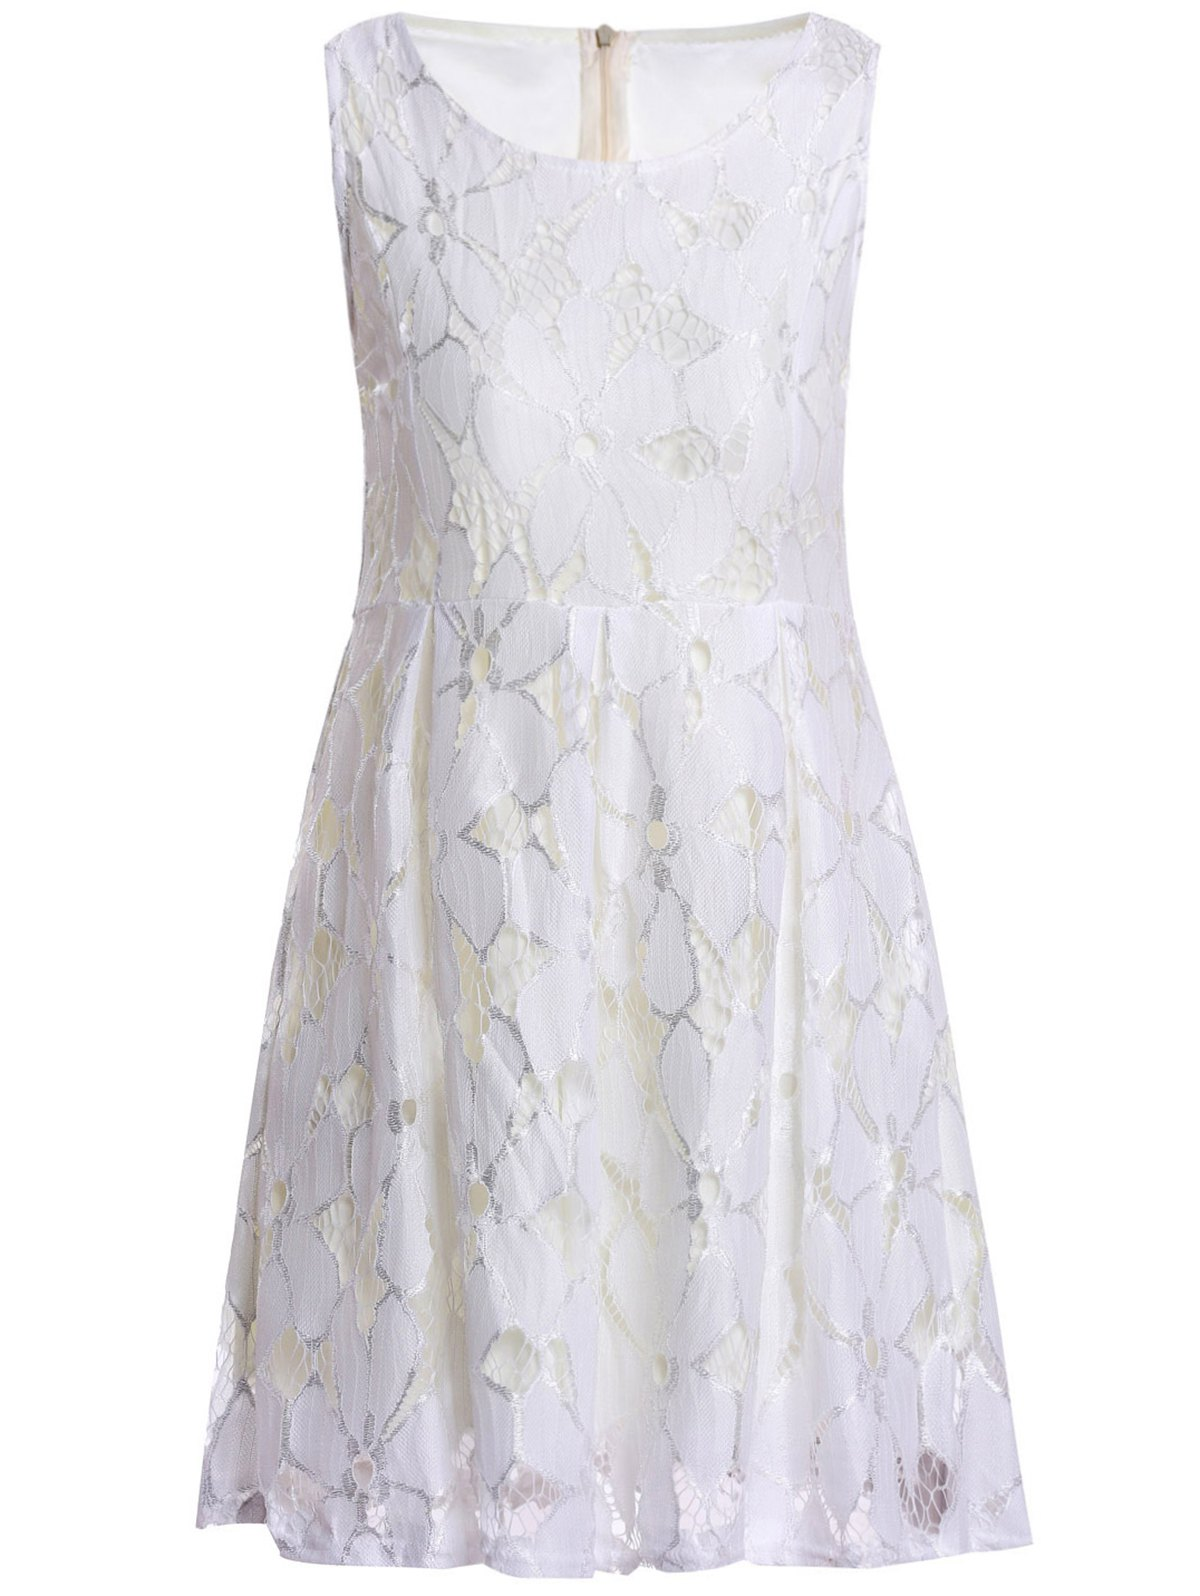 Store Jacquard Pleated Sleeveless Lace Dress